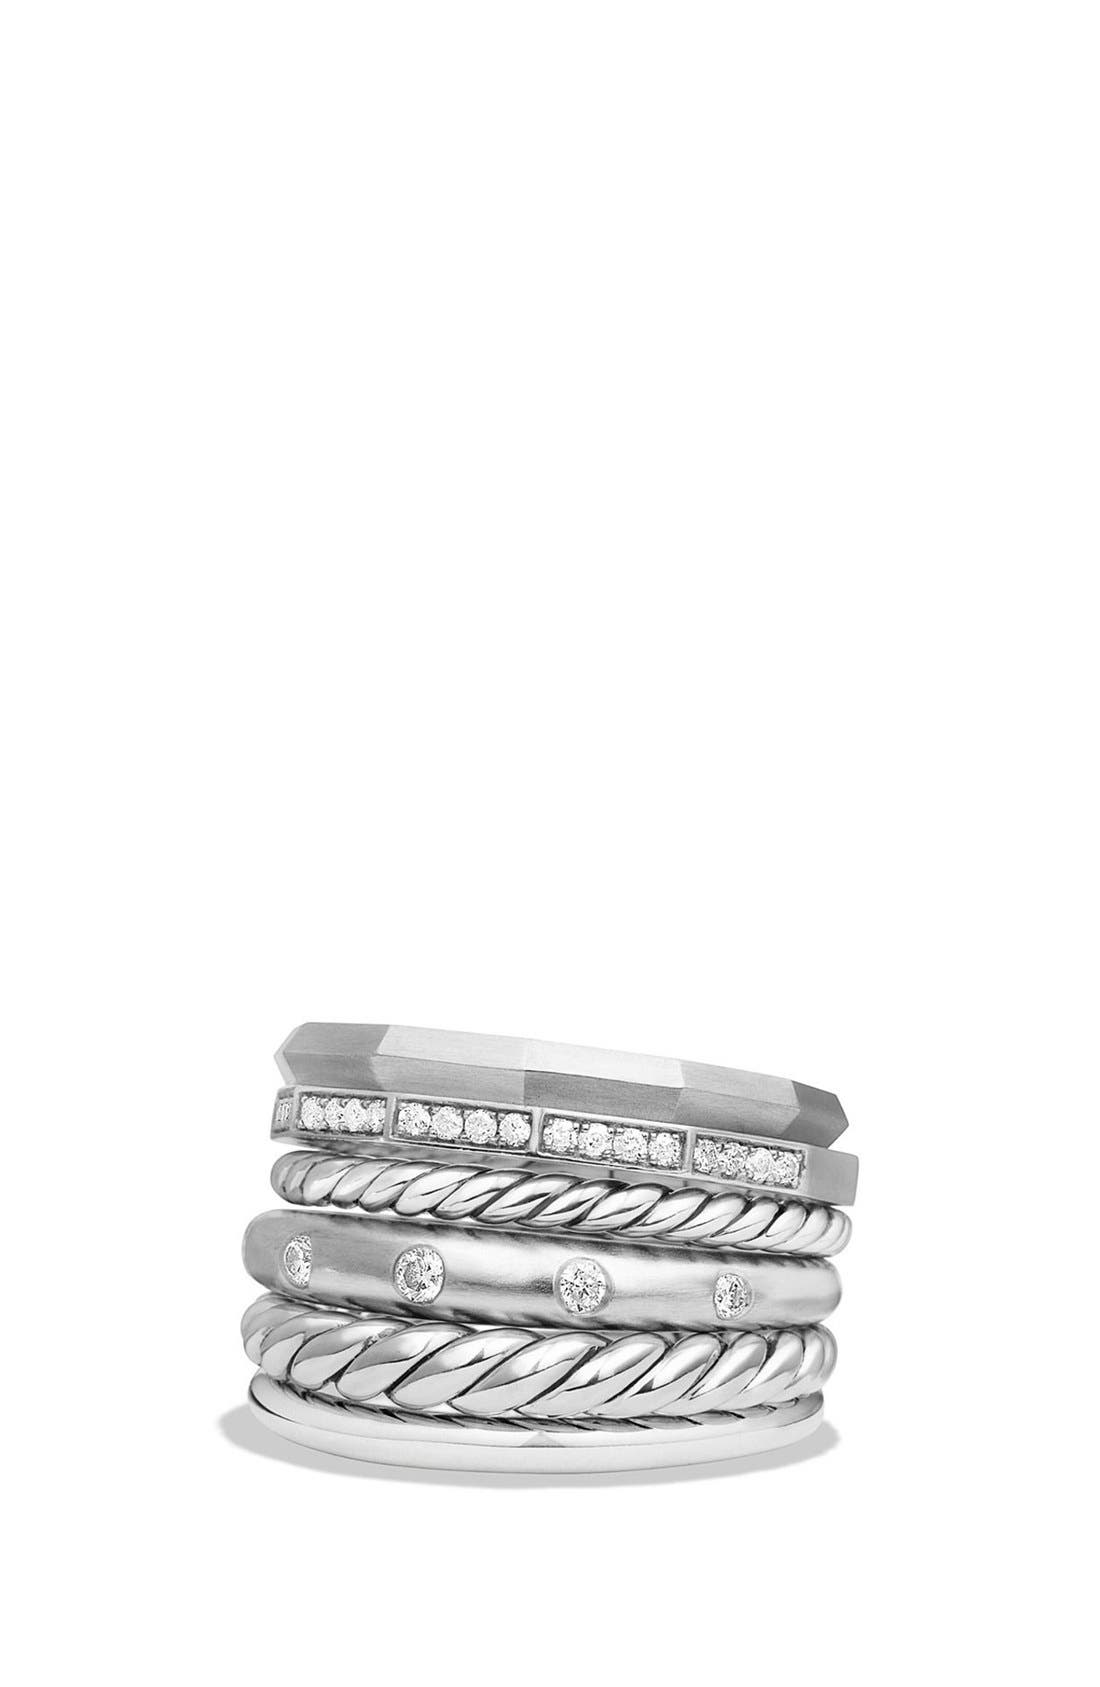 David Yurman 'Stax' Wide Diamond Ring